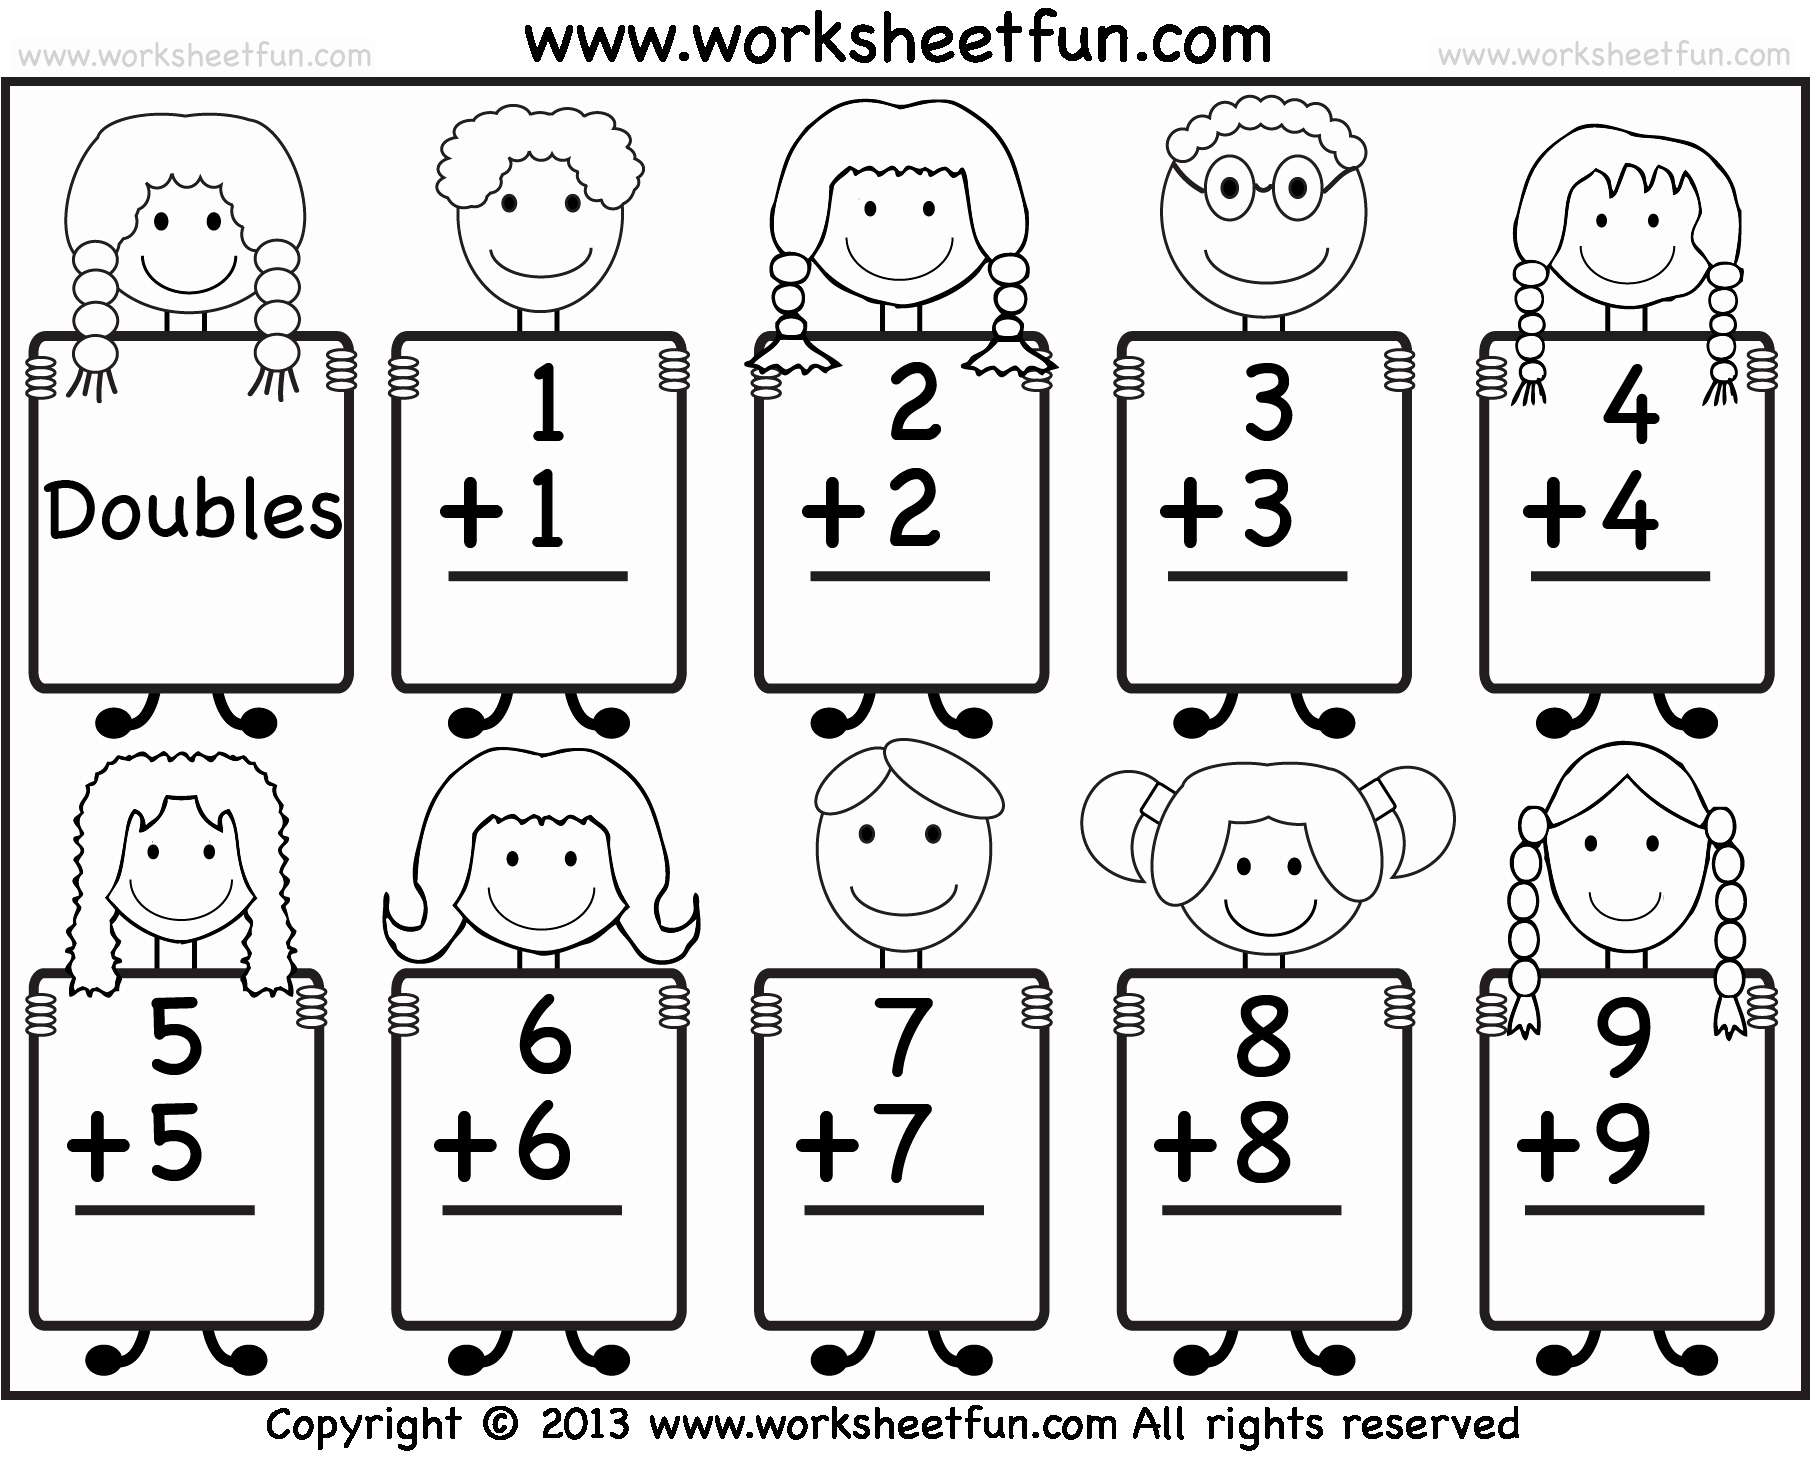 Double Facts Worksheets Beautiful Addition Doubles Facts – Beginner Addition Worksheet